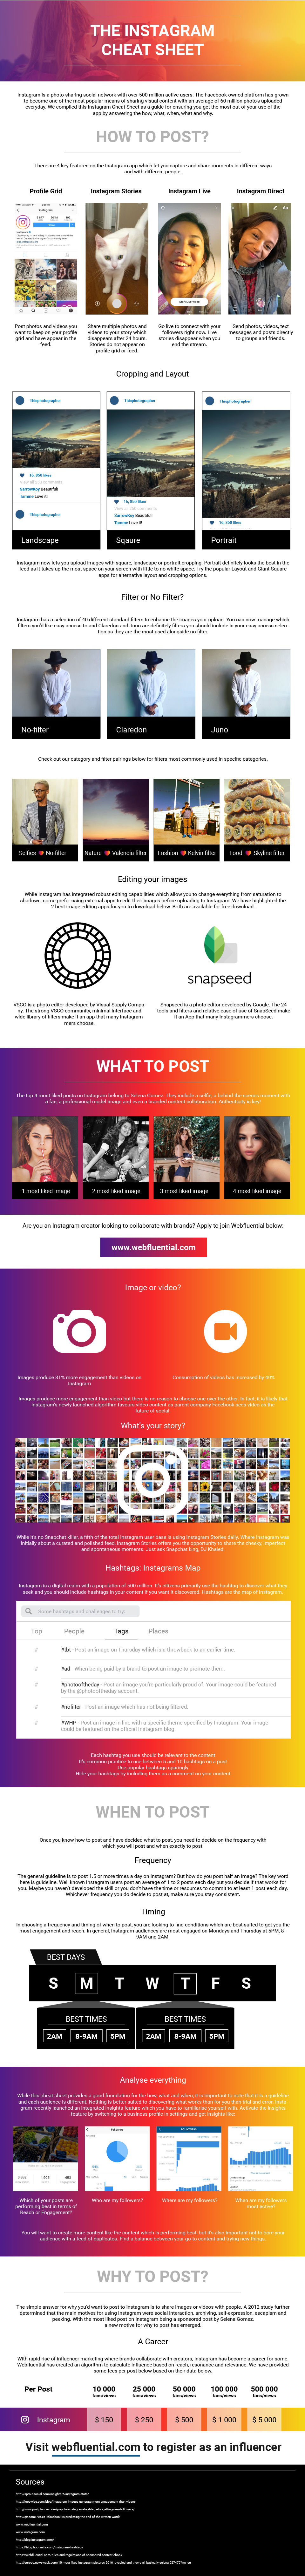 The Instagram Cheat Sheet [Infographic] | Social Media Today